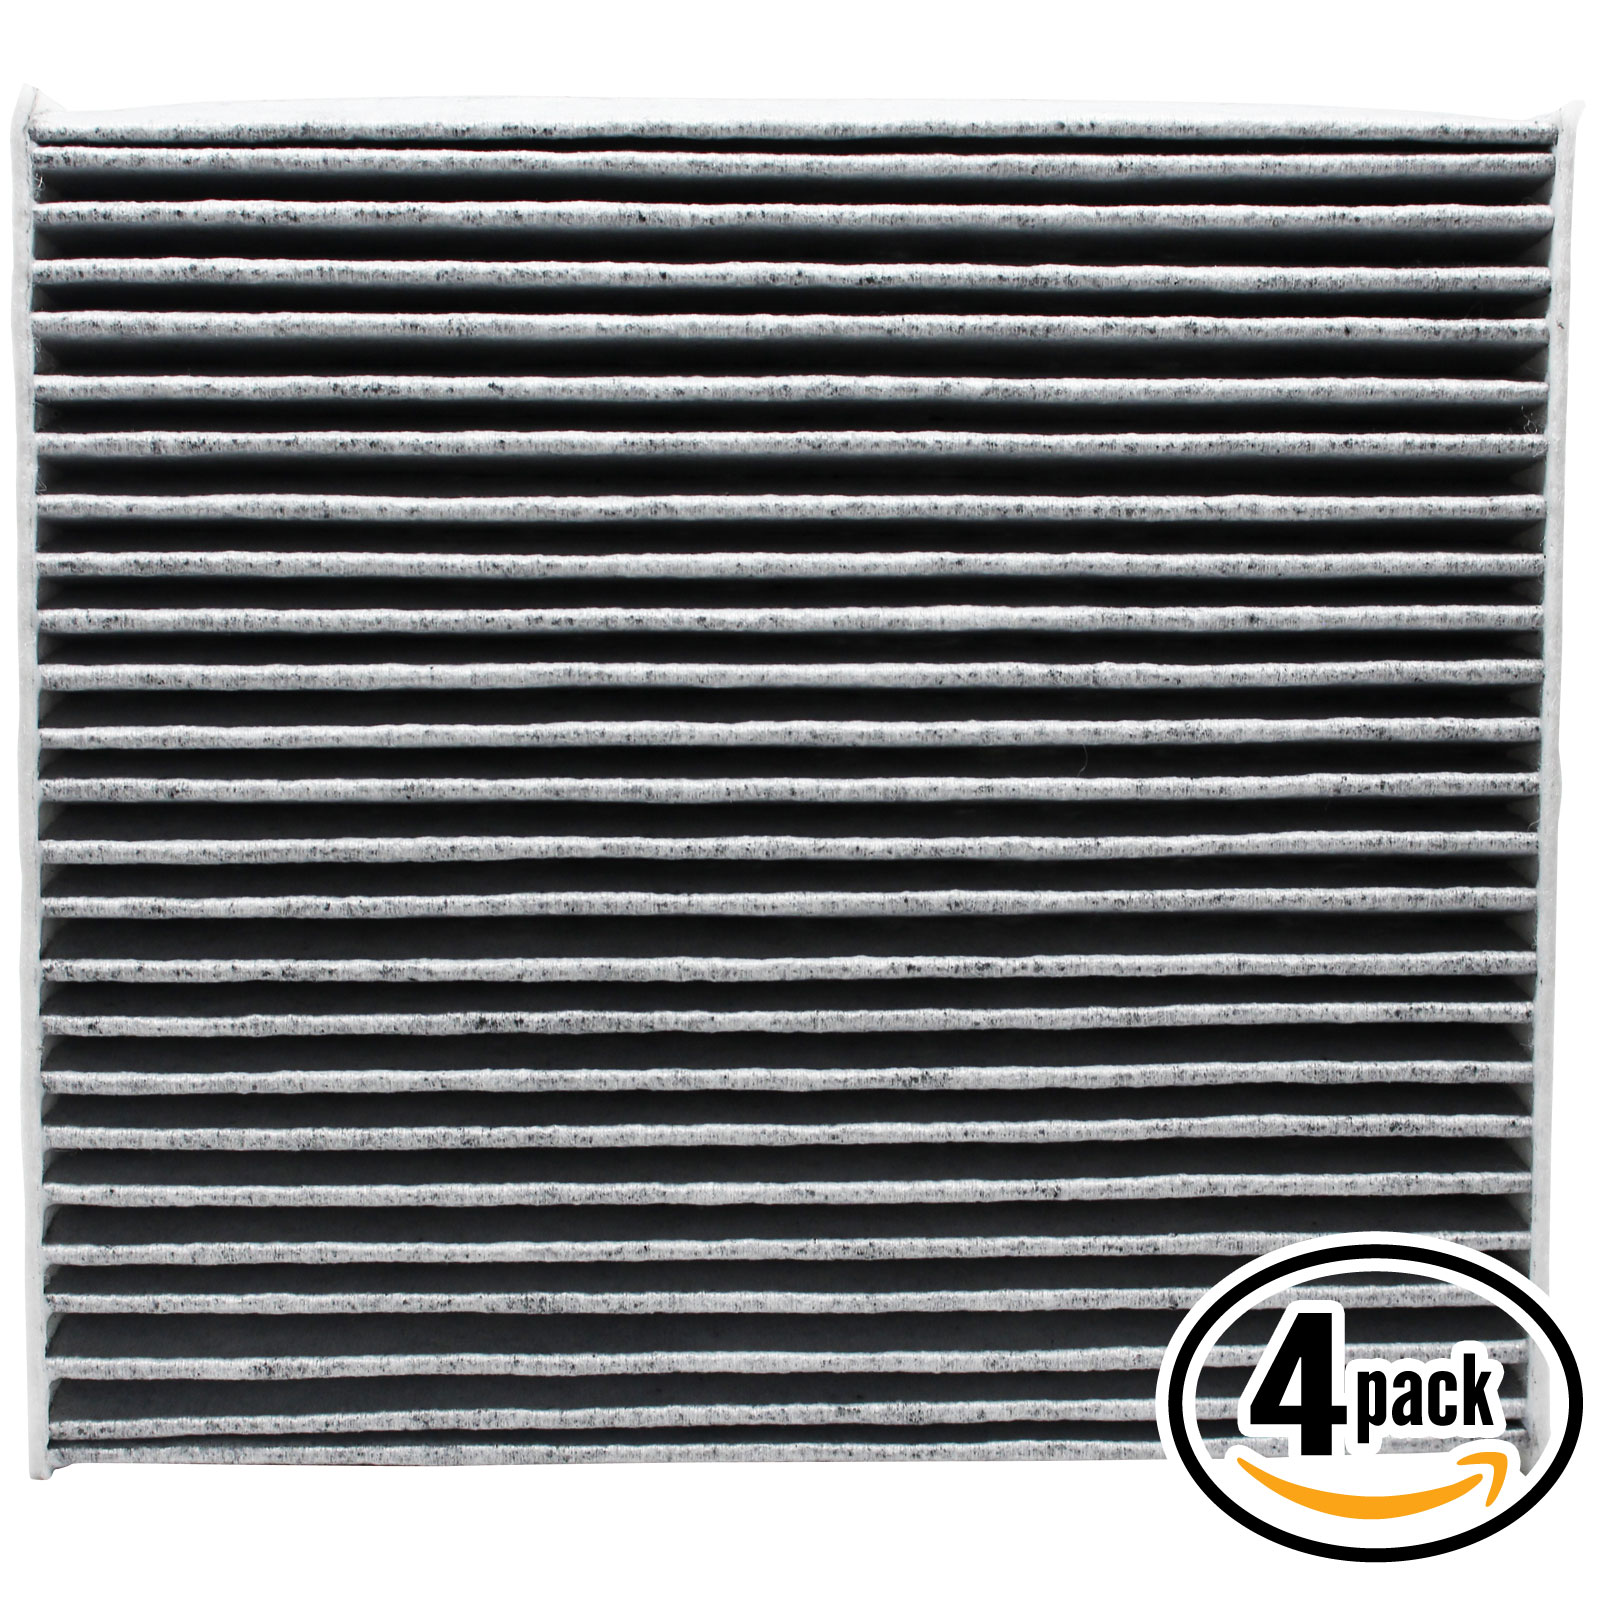 4-Pack Replacement Cabin Air Filter for 2007 Lexus GS 430 V8 4.3L 4293cc Car/Automotive - Activated Carbon, ACF-10285 - image 4 of 4